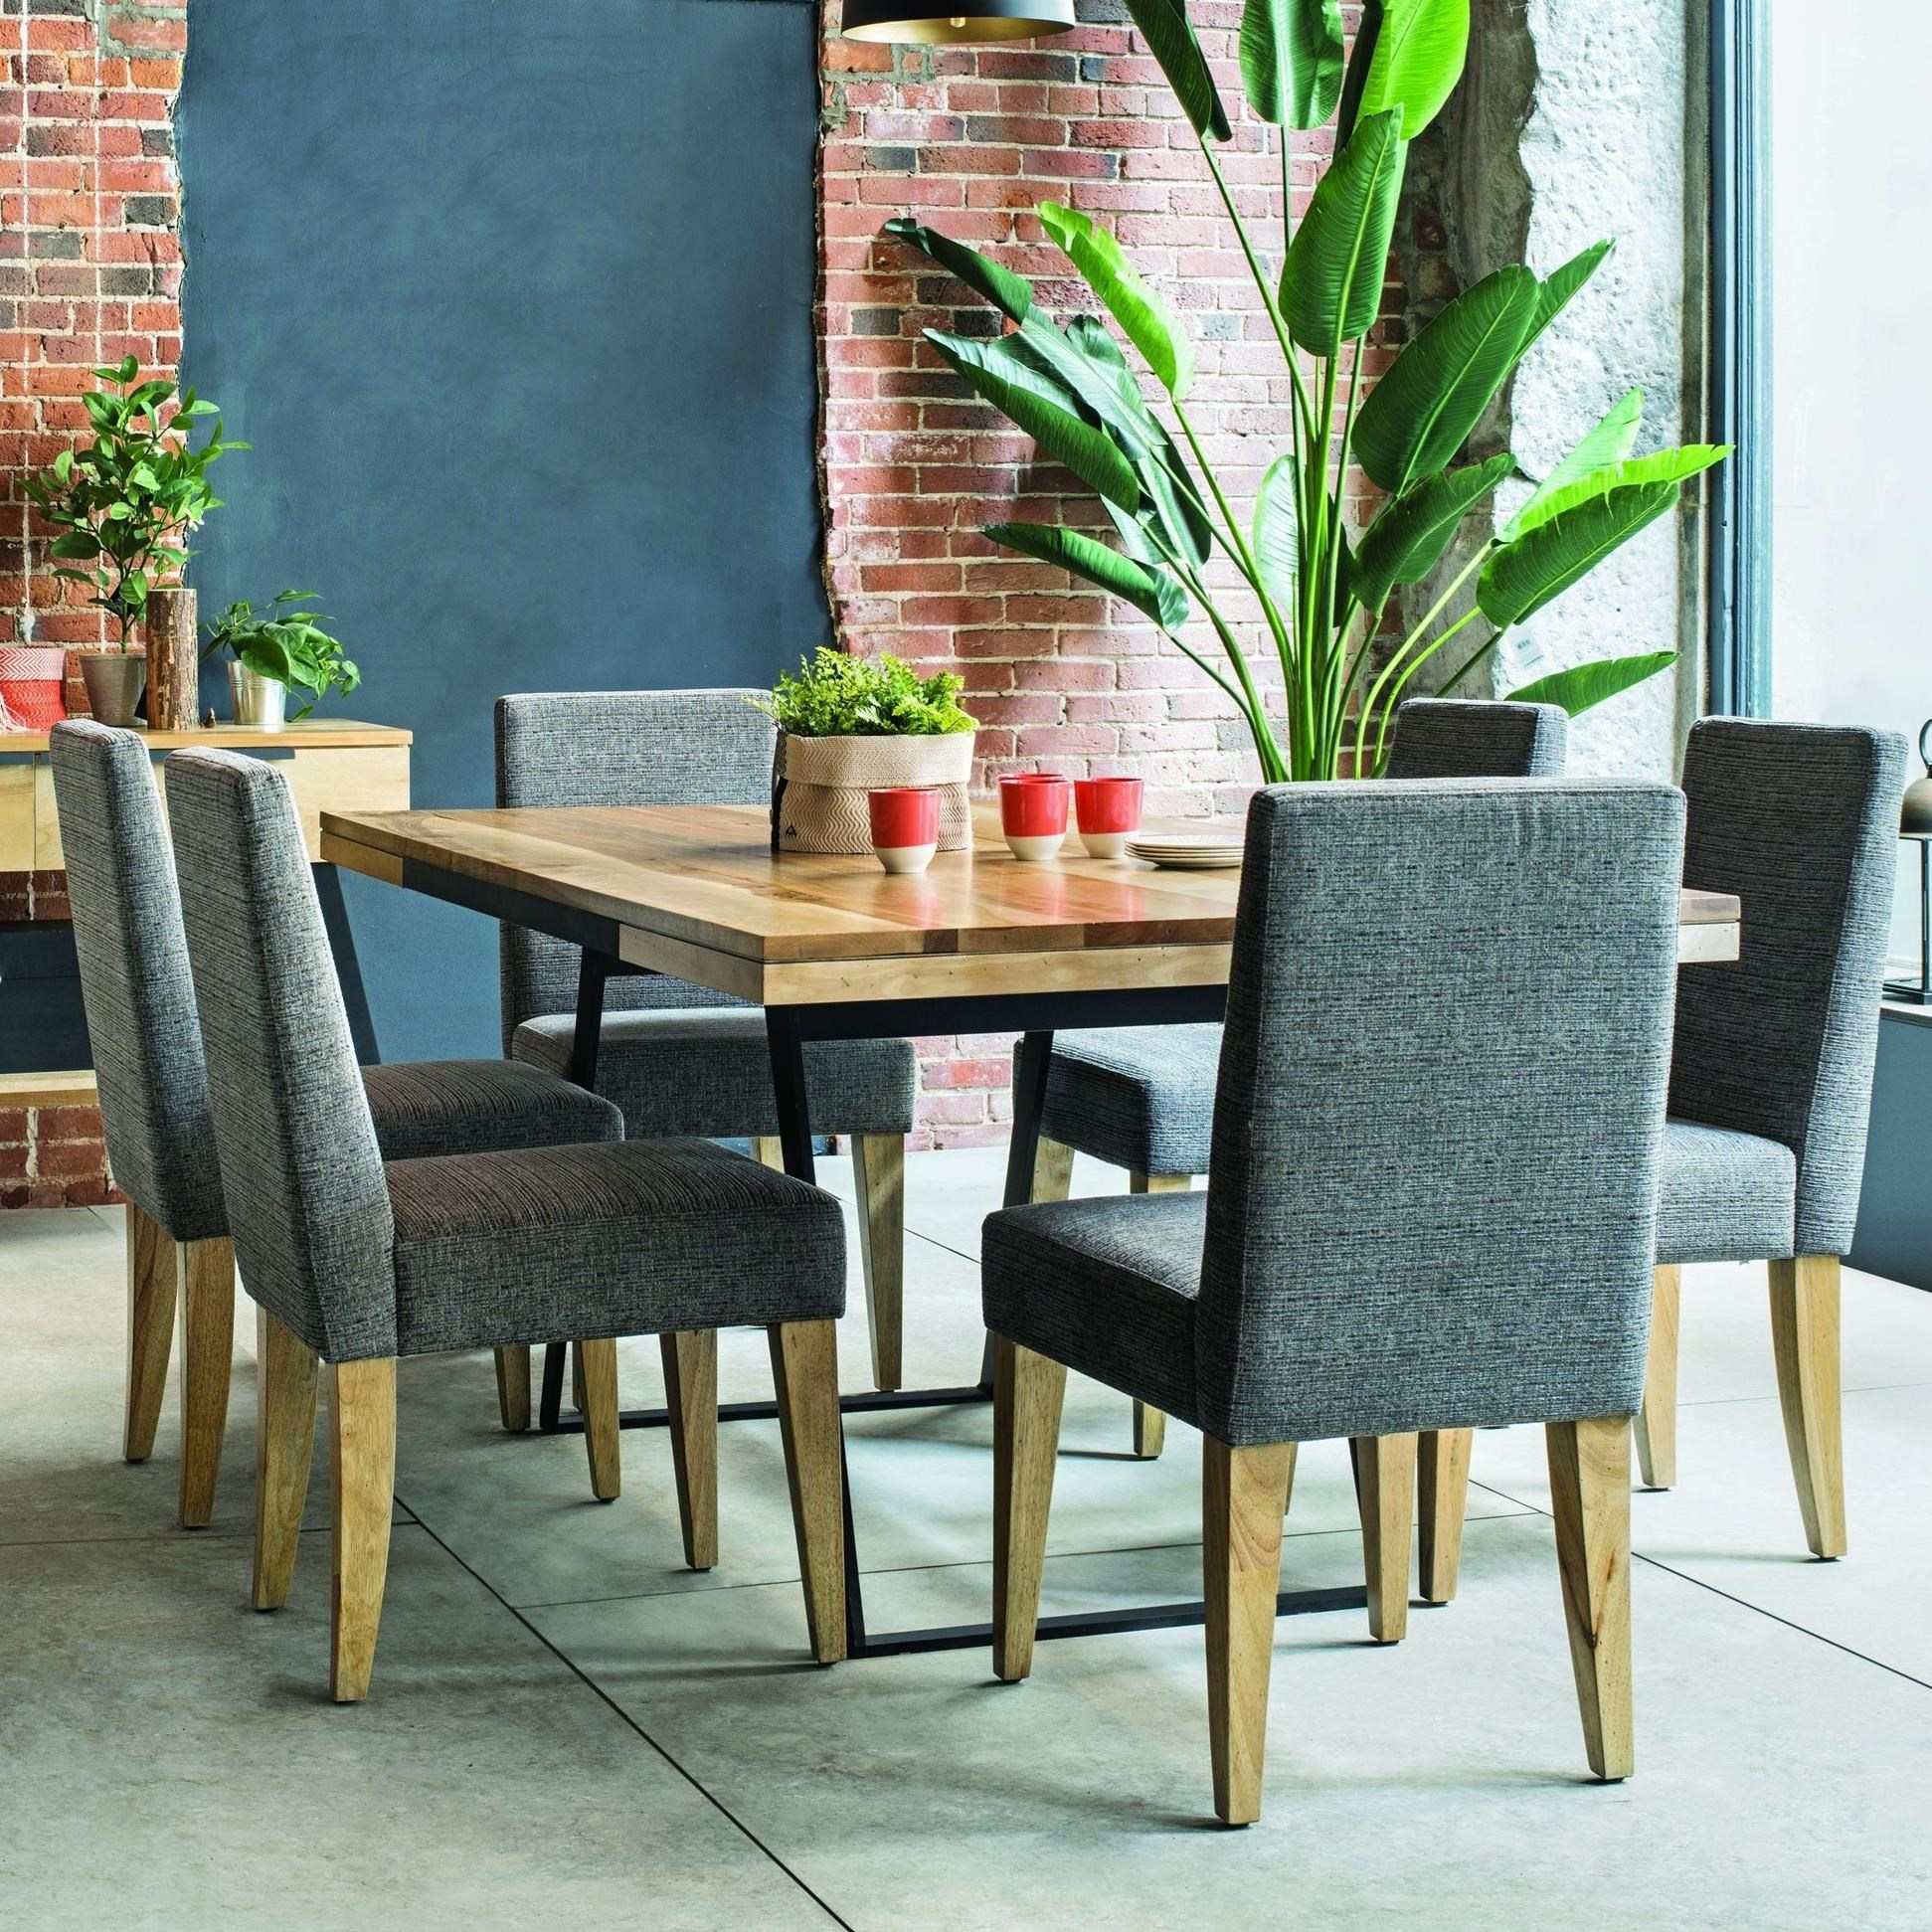 East Side Customizable Dining Table Set by Canadel at Dinette Depot